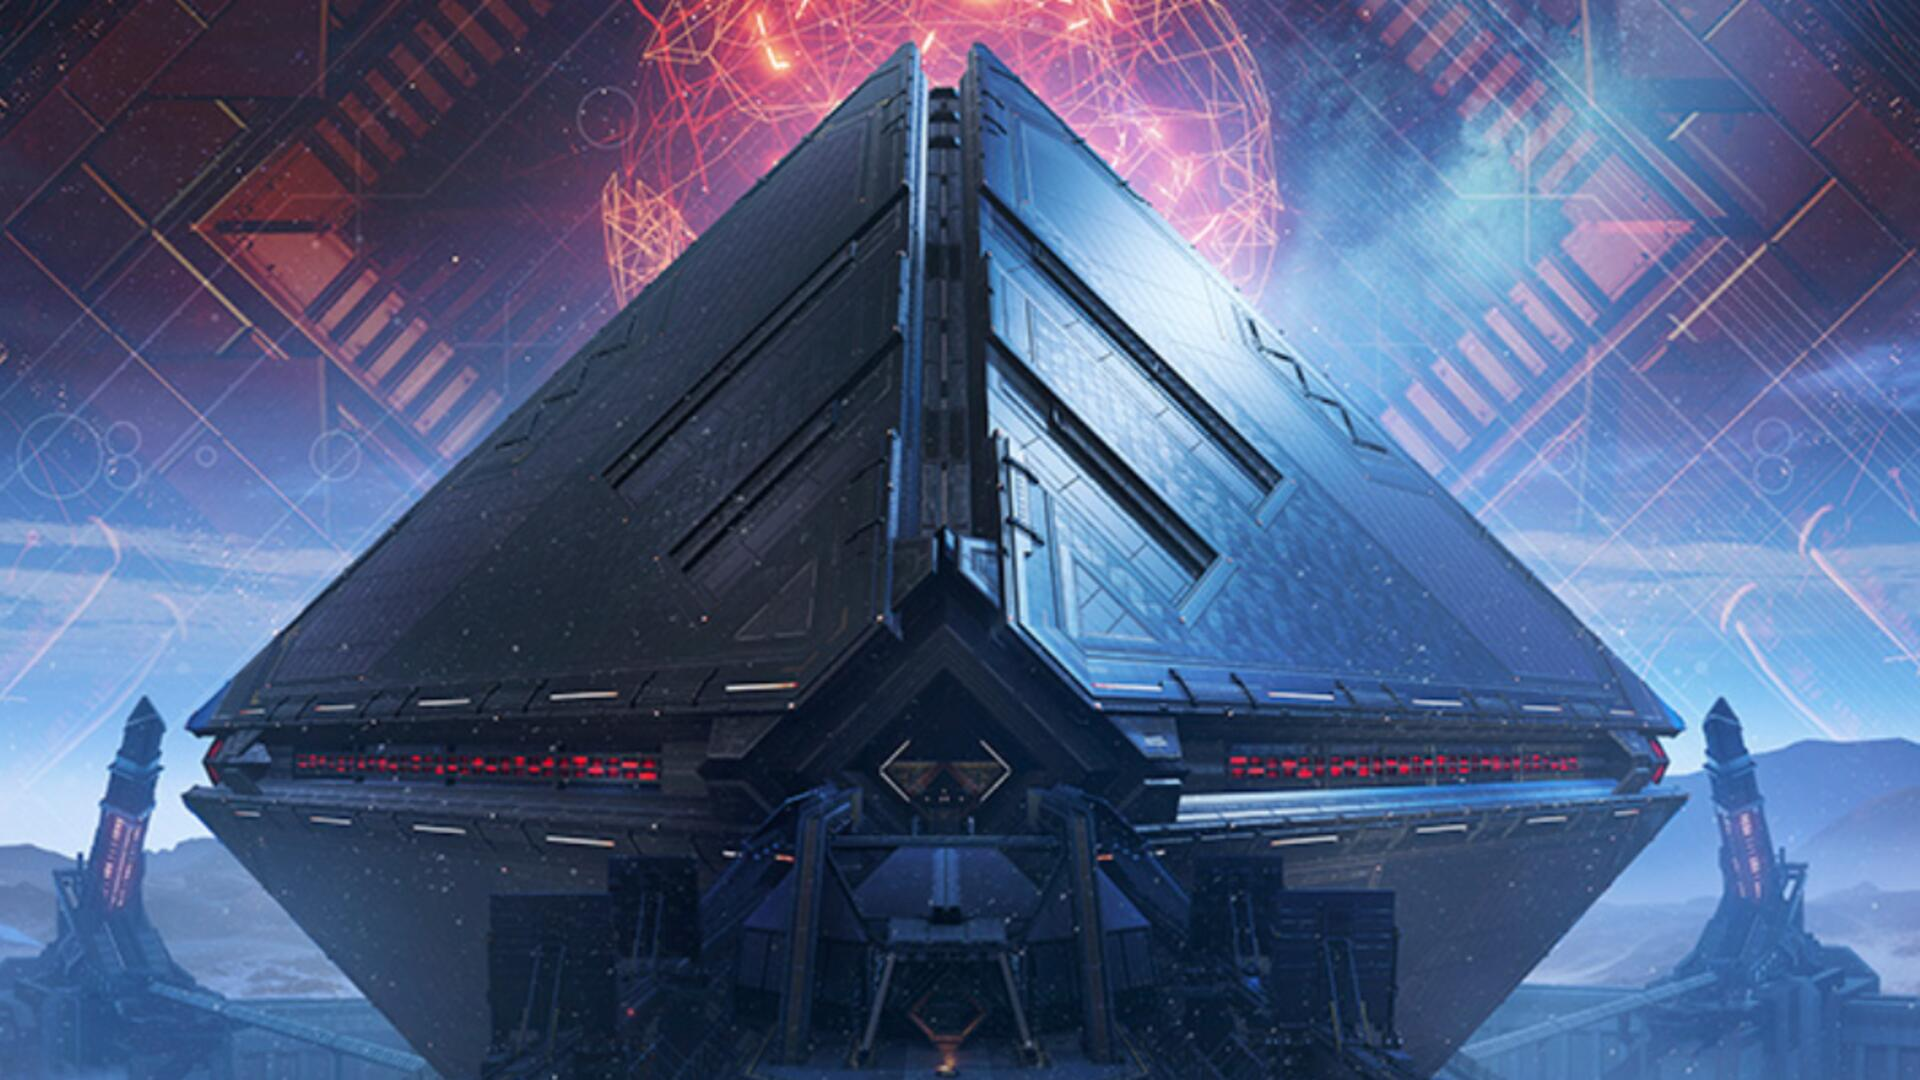 Destiny 2 Unsolvable Problem Guide - How to Complete the